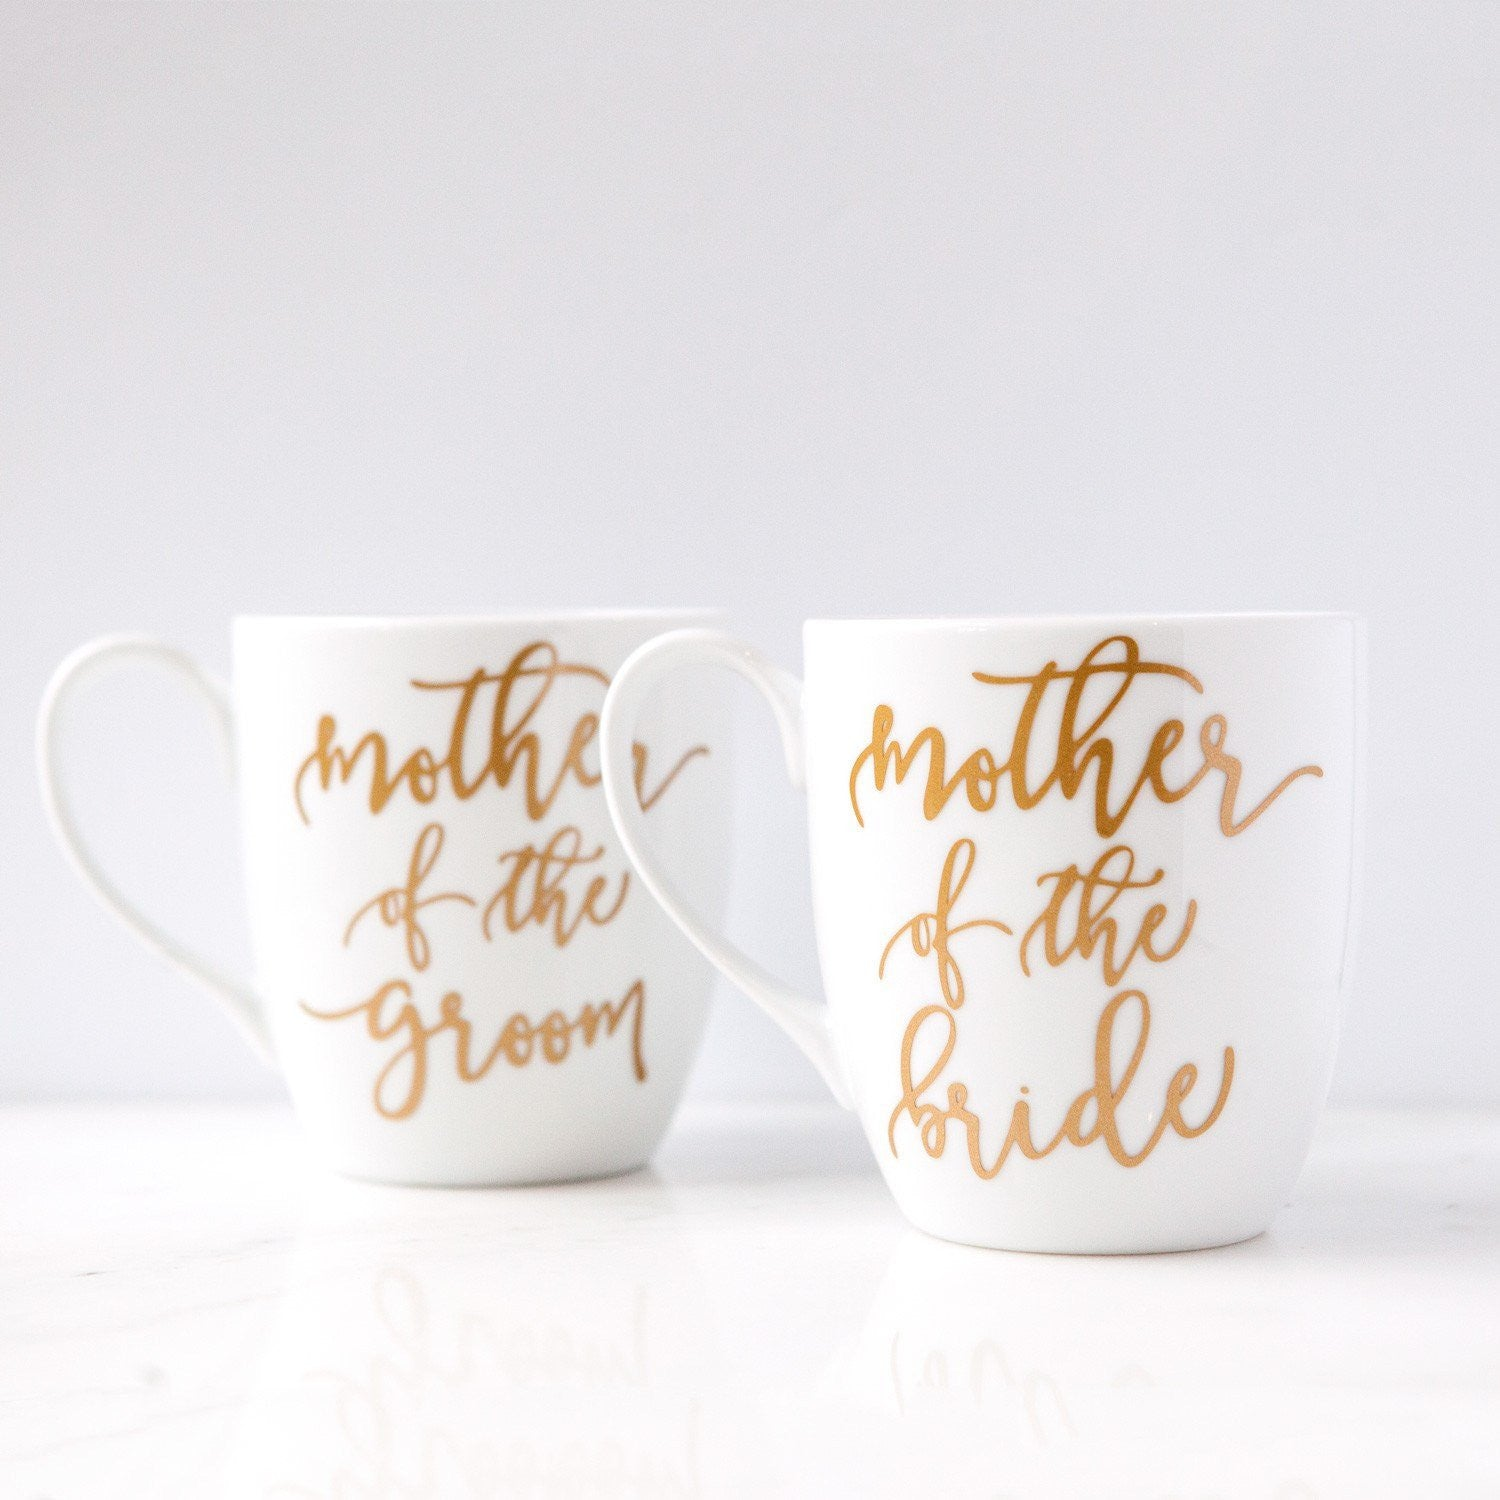 Mother of the Bride Groom Mug Foxblossom Co